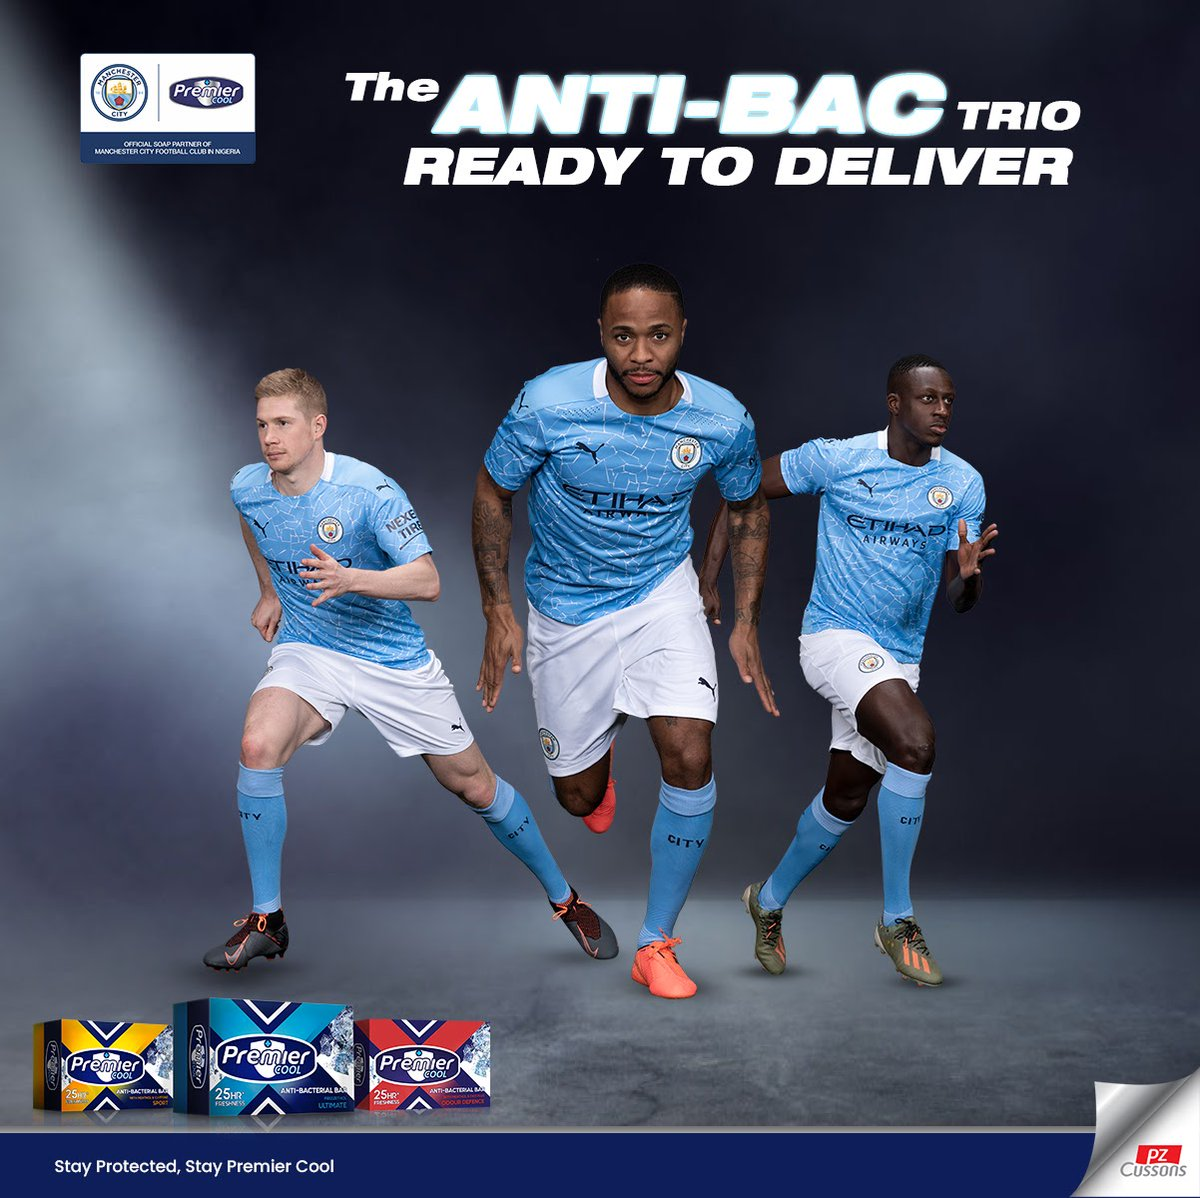 Specially formulated to give you 25HRS of protection and icy freshness. The anti-bacterial trio leaves you feeling confident and ready to deliver in your tasks.  Stay Protected. Stay Premier Cool   #PremierCool #MCFC #CoolSquad #StayConfident #IcyFresh #Protection #StayProtected